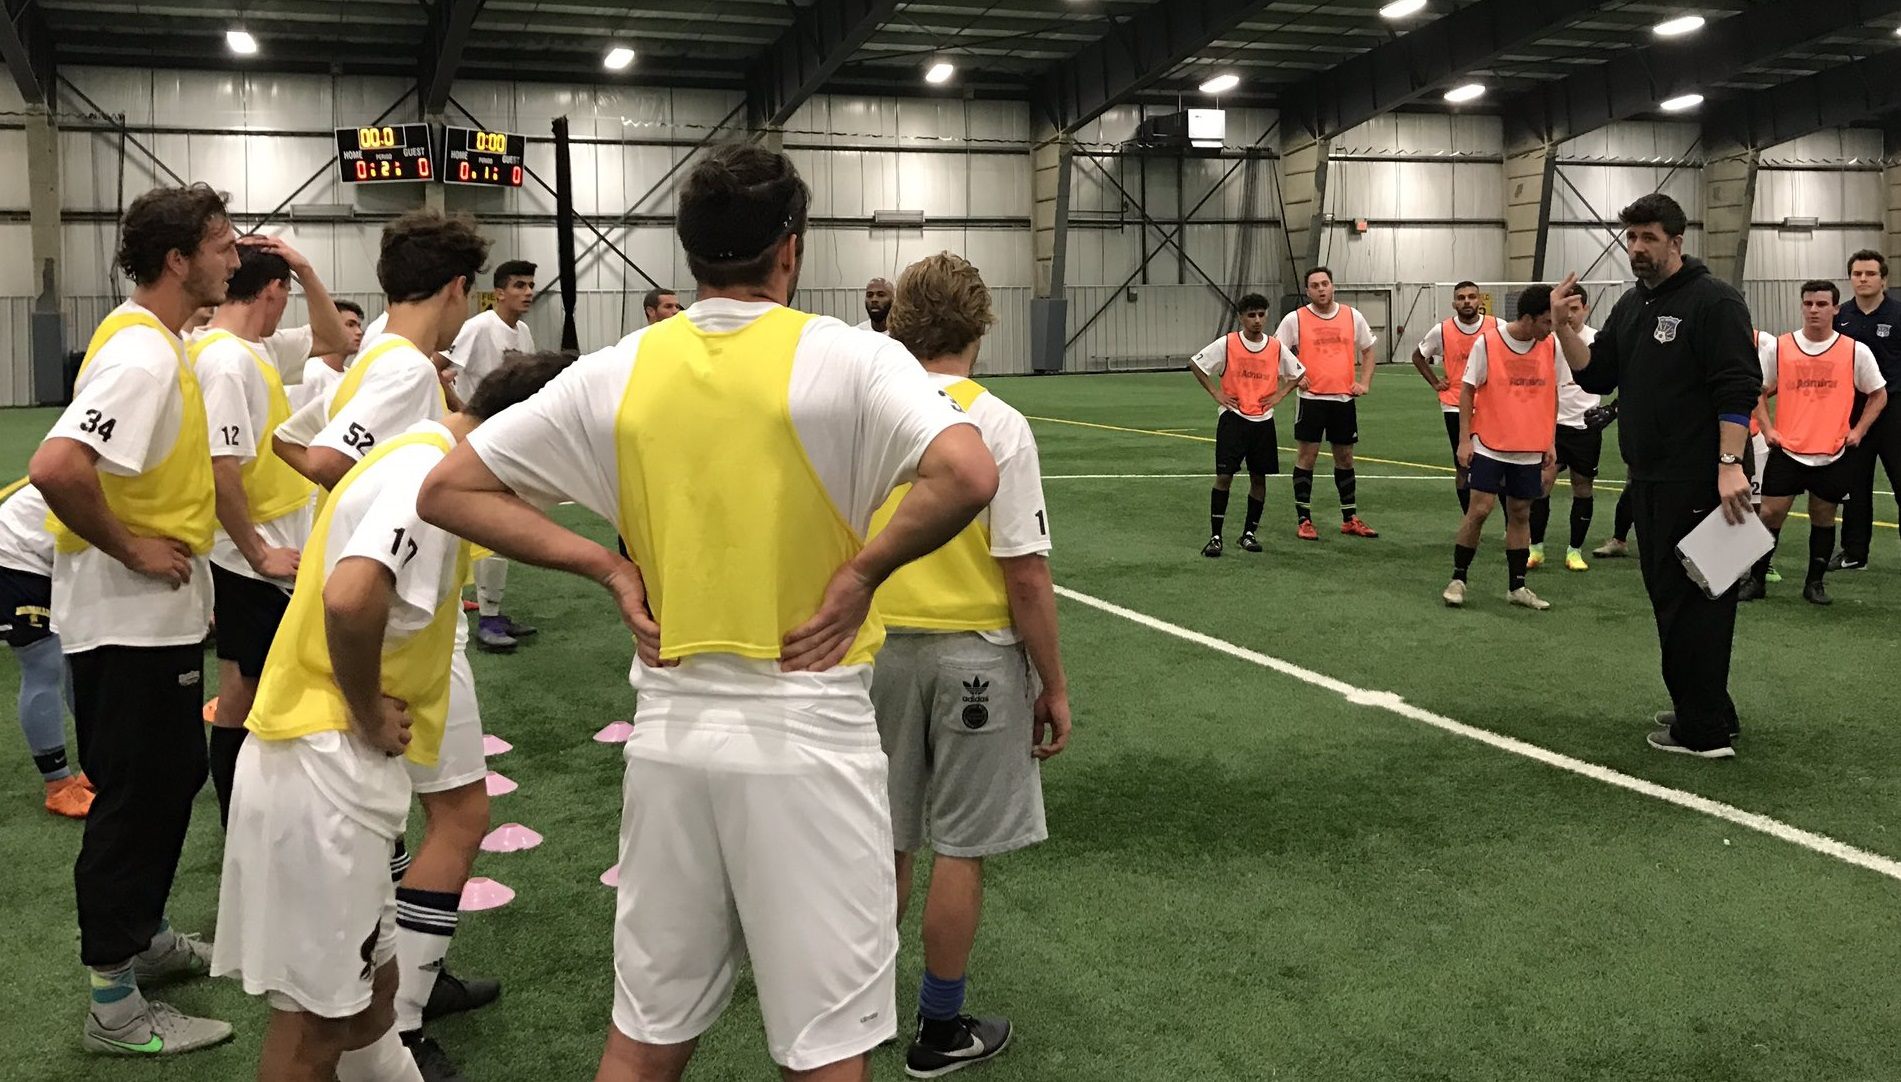 FC Buffalo head coach Brendan Murphy addresses tryout participants. (via FC Buffalo)